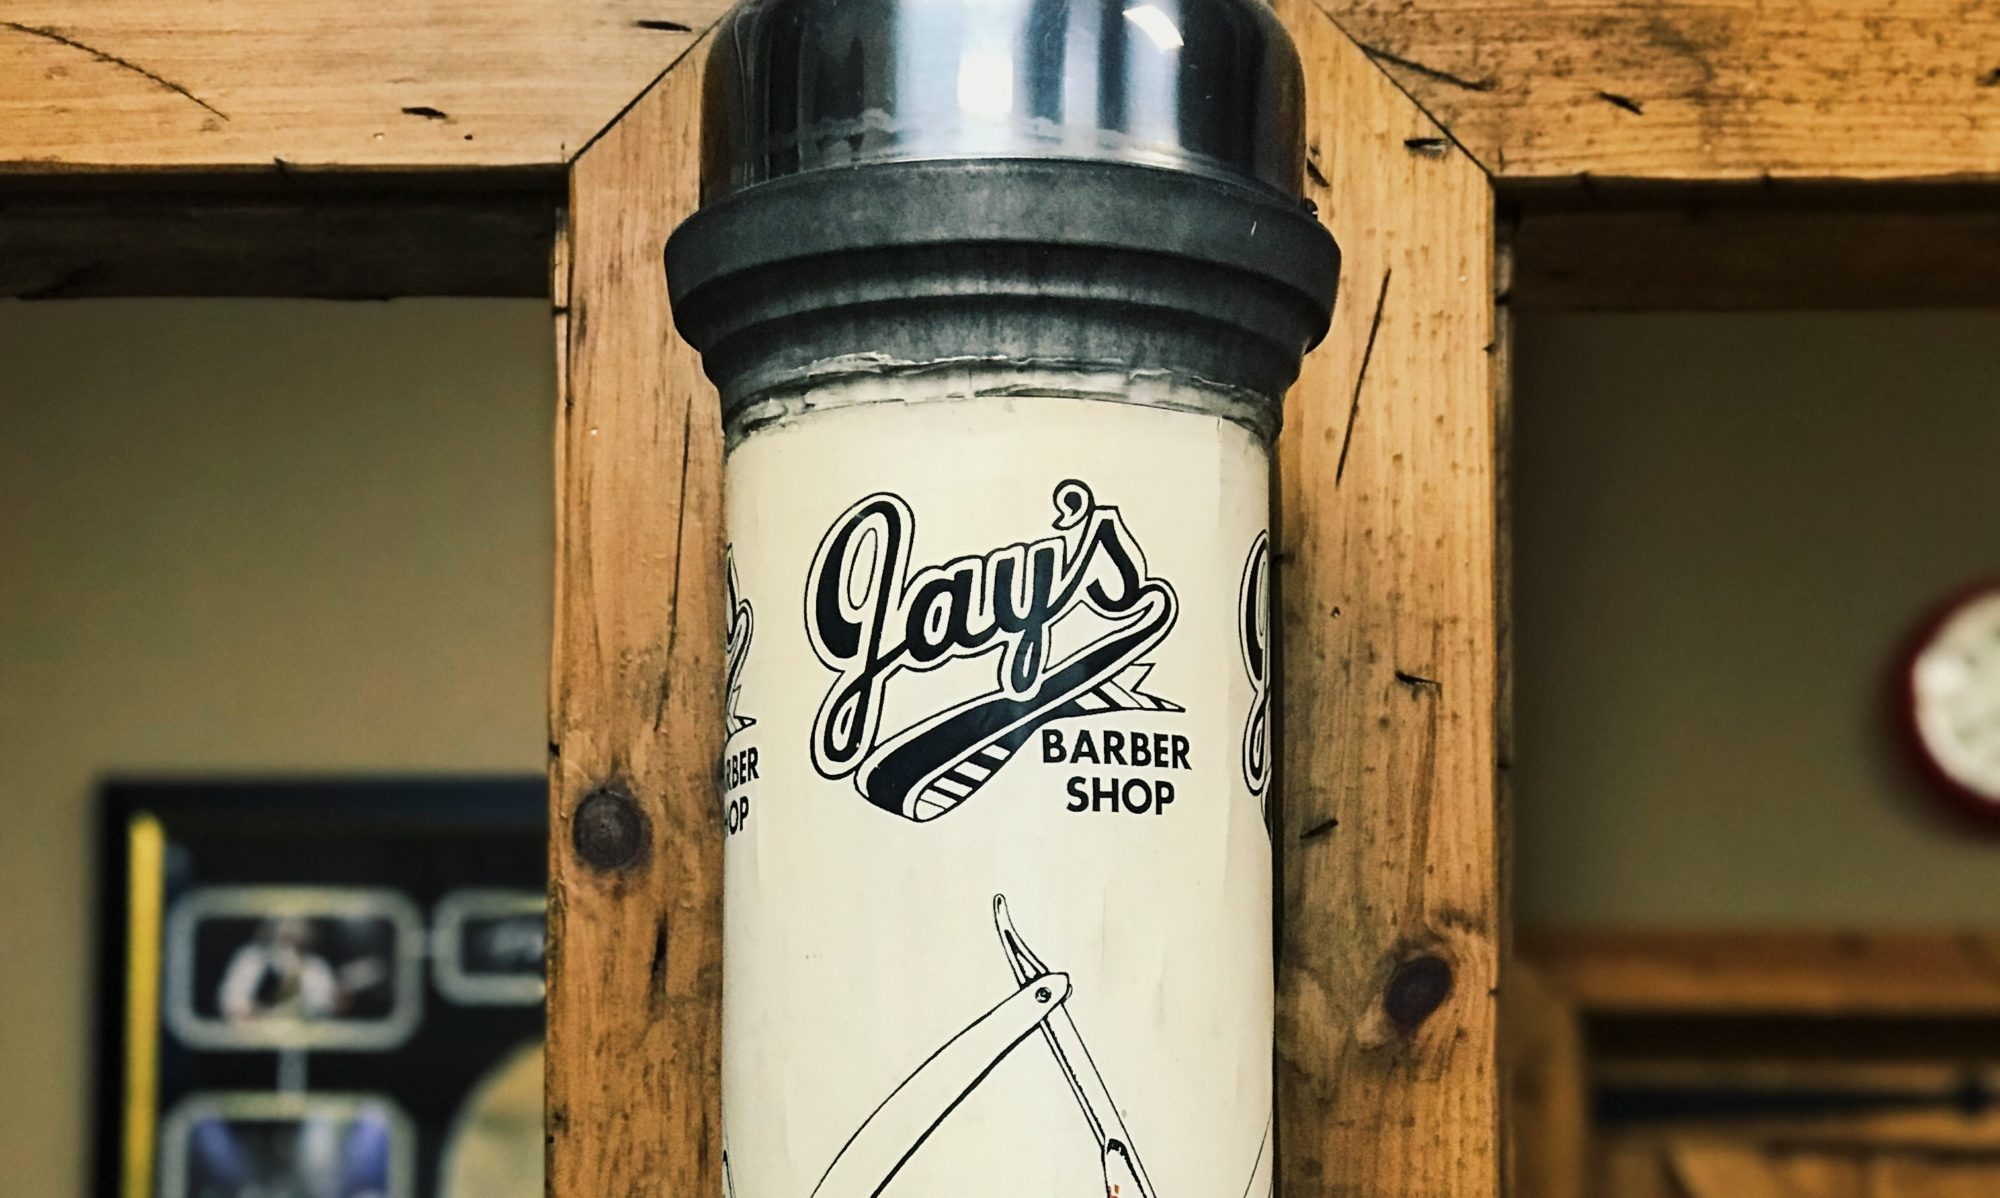 Jay's Barber Shop